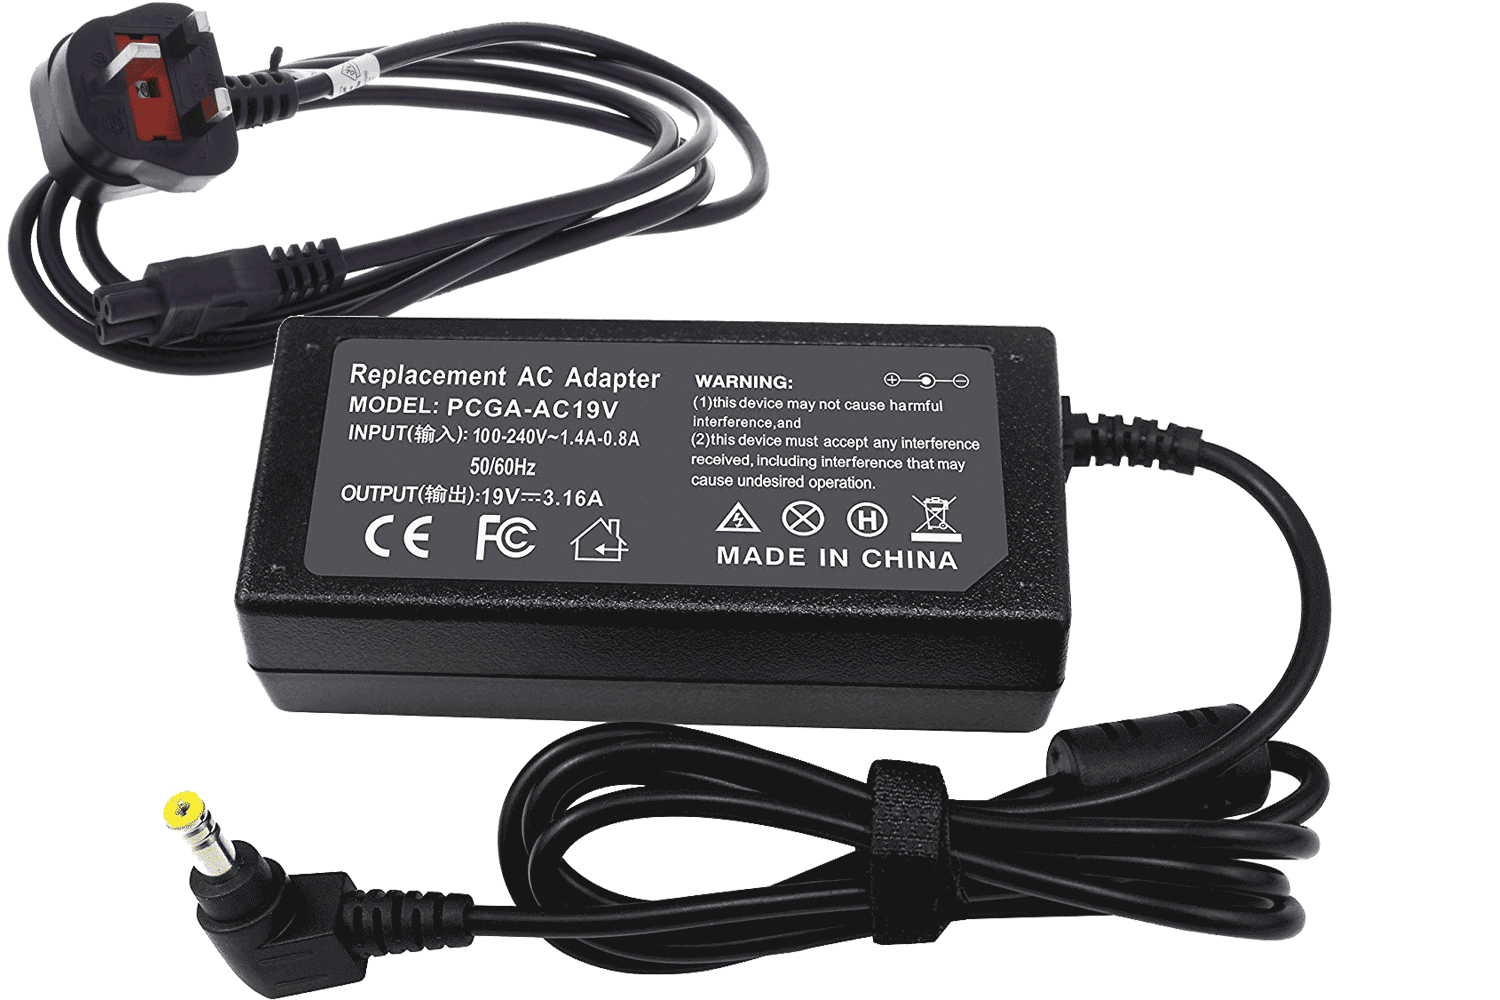 Acer AcerNote 367D Laptop Charger / Power Adapter